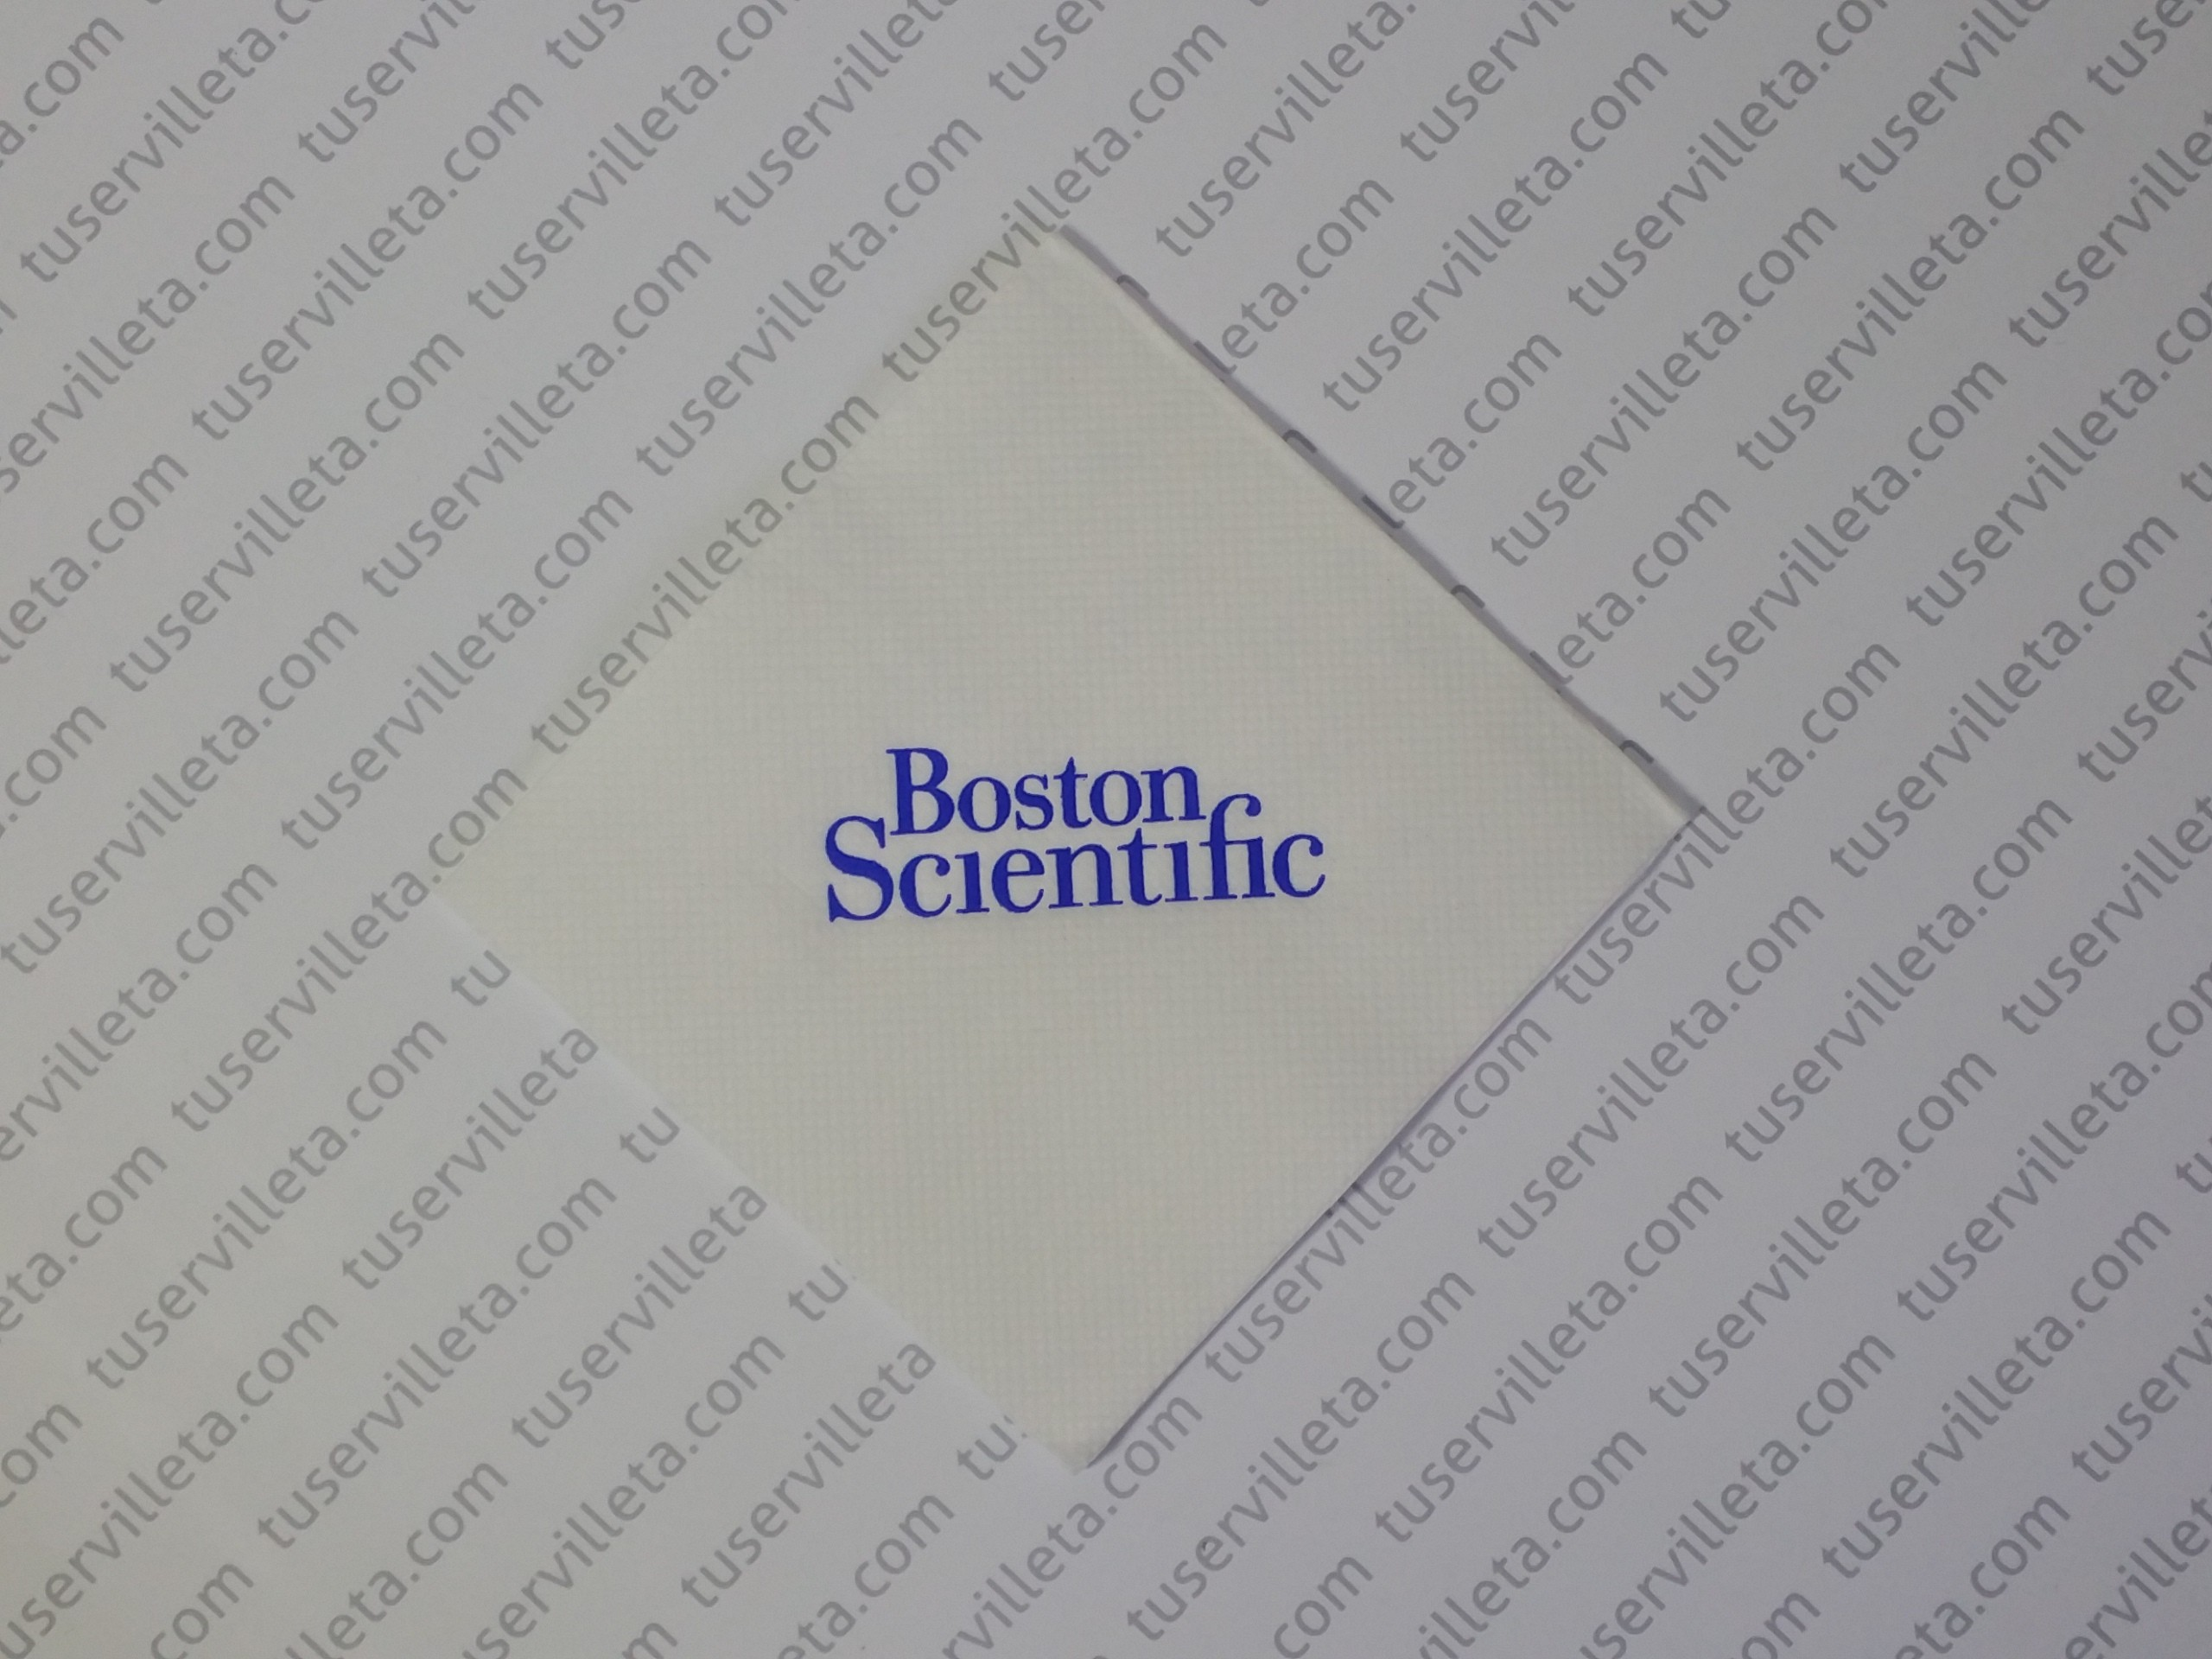 Servilletas Impresas Boston Scientific